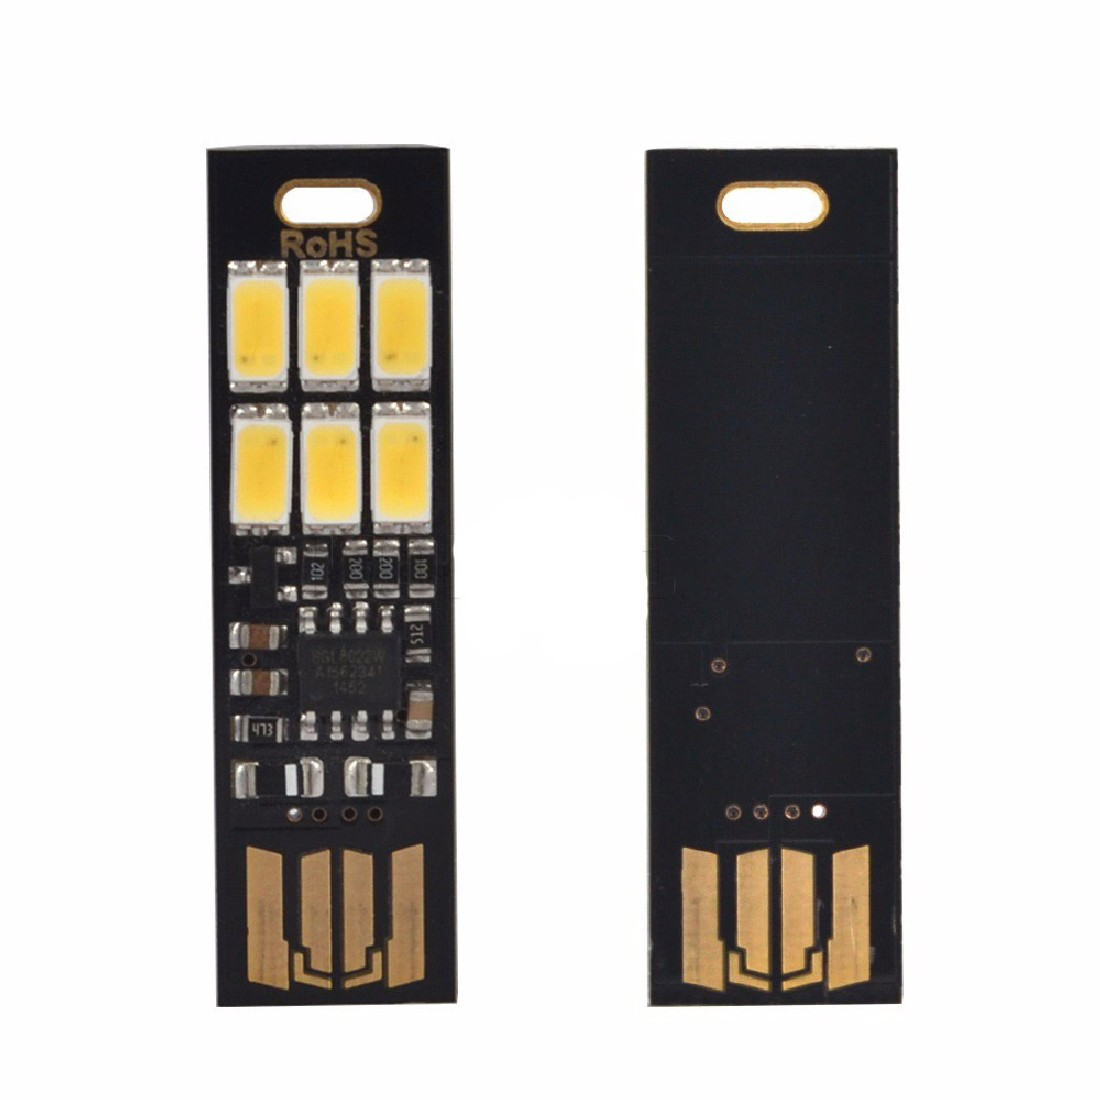 6 LED Mini Adjust Brightness Night Lights Finger Touch Lamp Dimmer Pocket Card USB Power For Power Computer Laptop